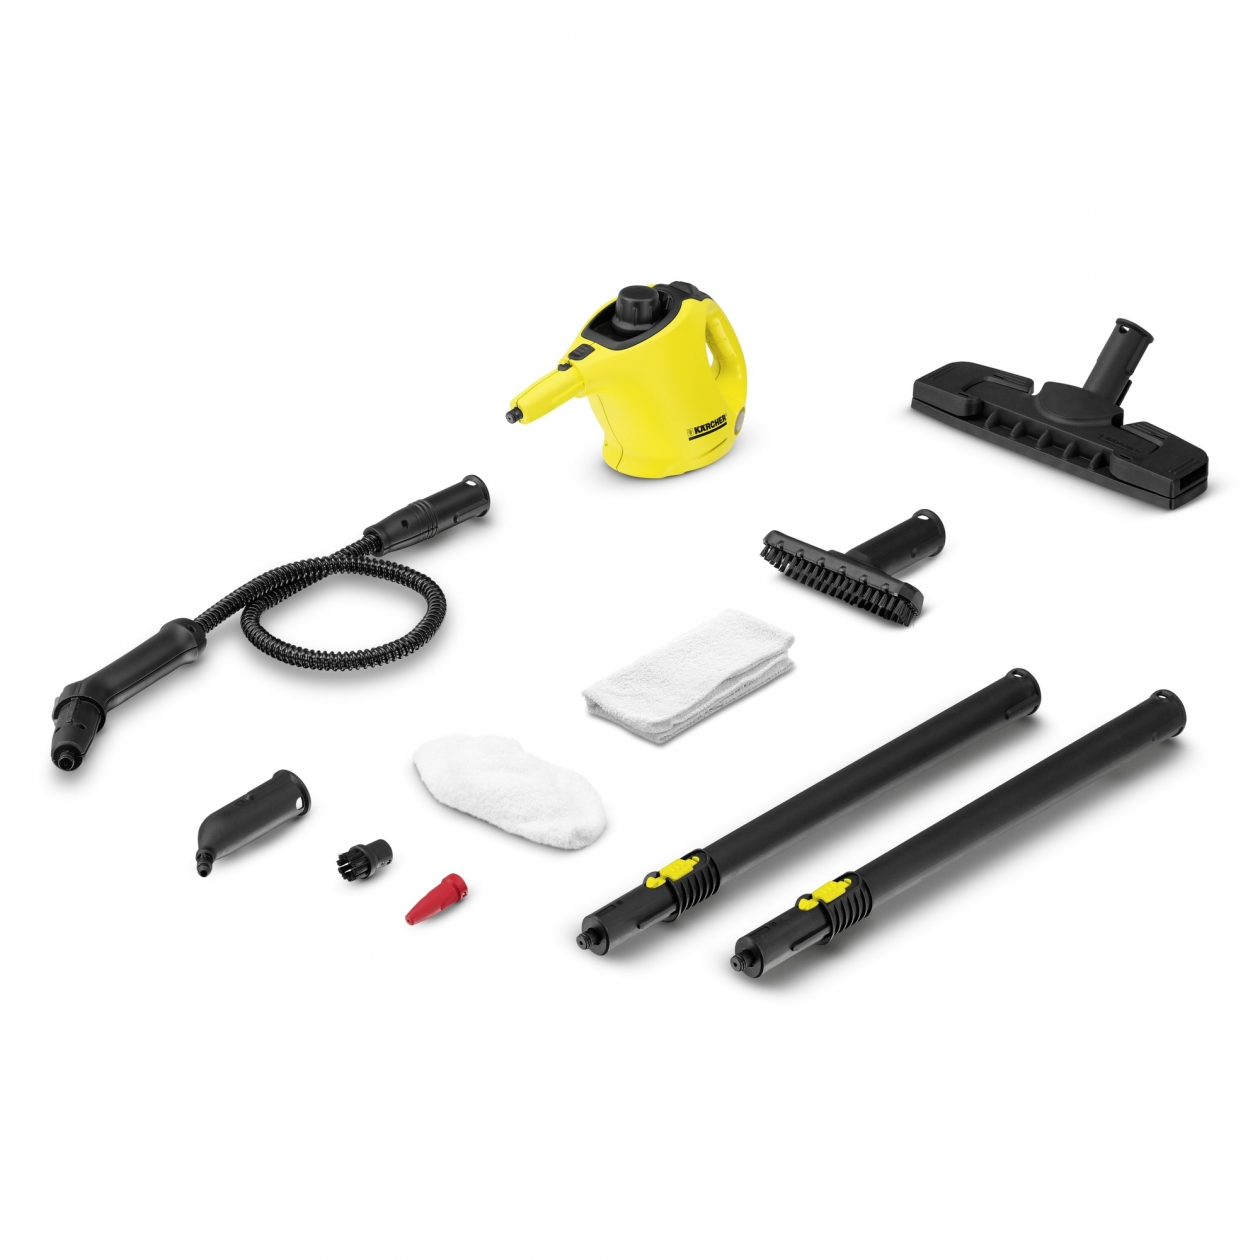 karcher sc 1 handheld steam cleaner a1 pressure washers. Black Bedroom Furniture Sets. Home Design Ideas